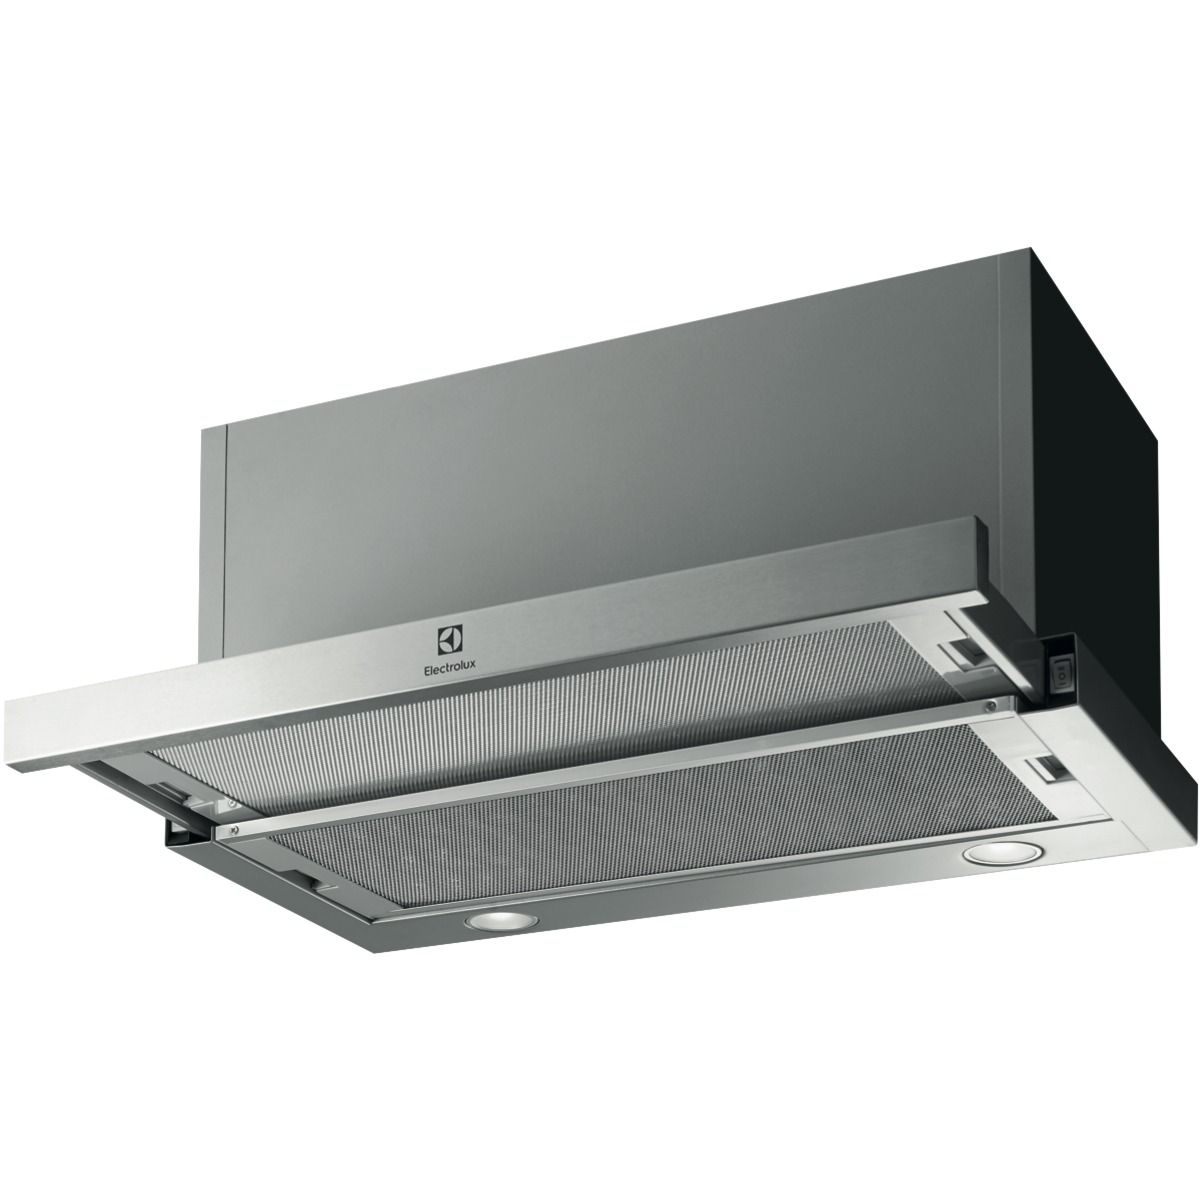 Charming Shop Online For Electrolux ERR627SA Electrolux 60cm Slideout Rangehood And  More At The Good Guys.